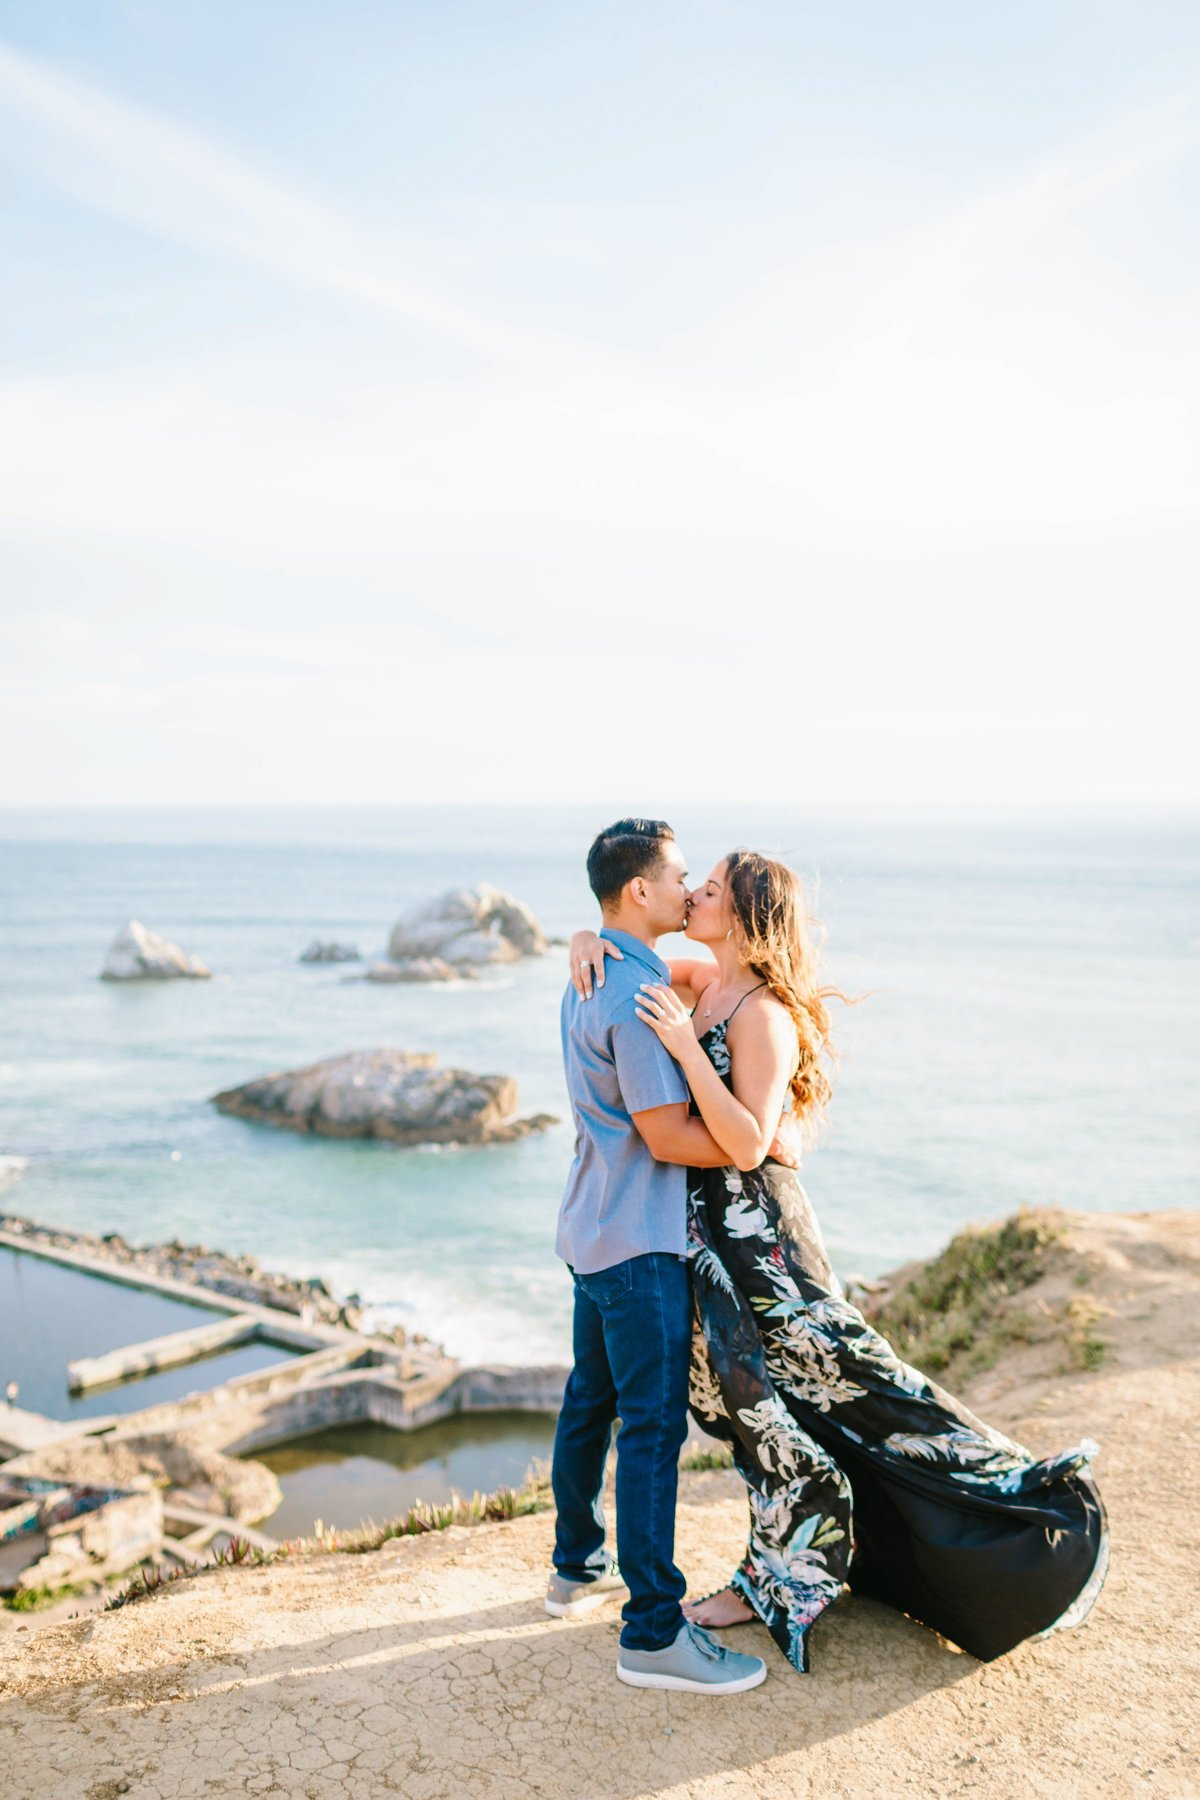 Best California Engagement Photographer-Jodee Debes Photography-109